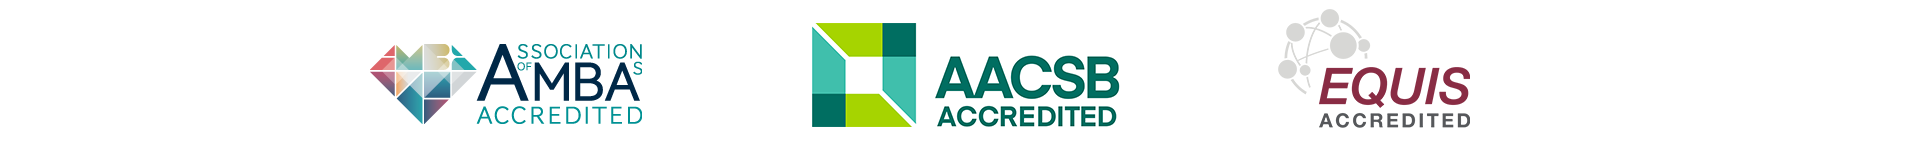 Image with AMBA, AACSB, and EQUIS logos